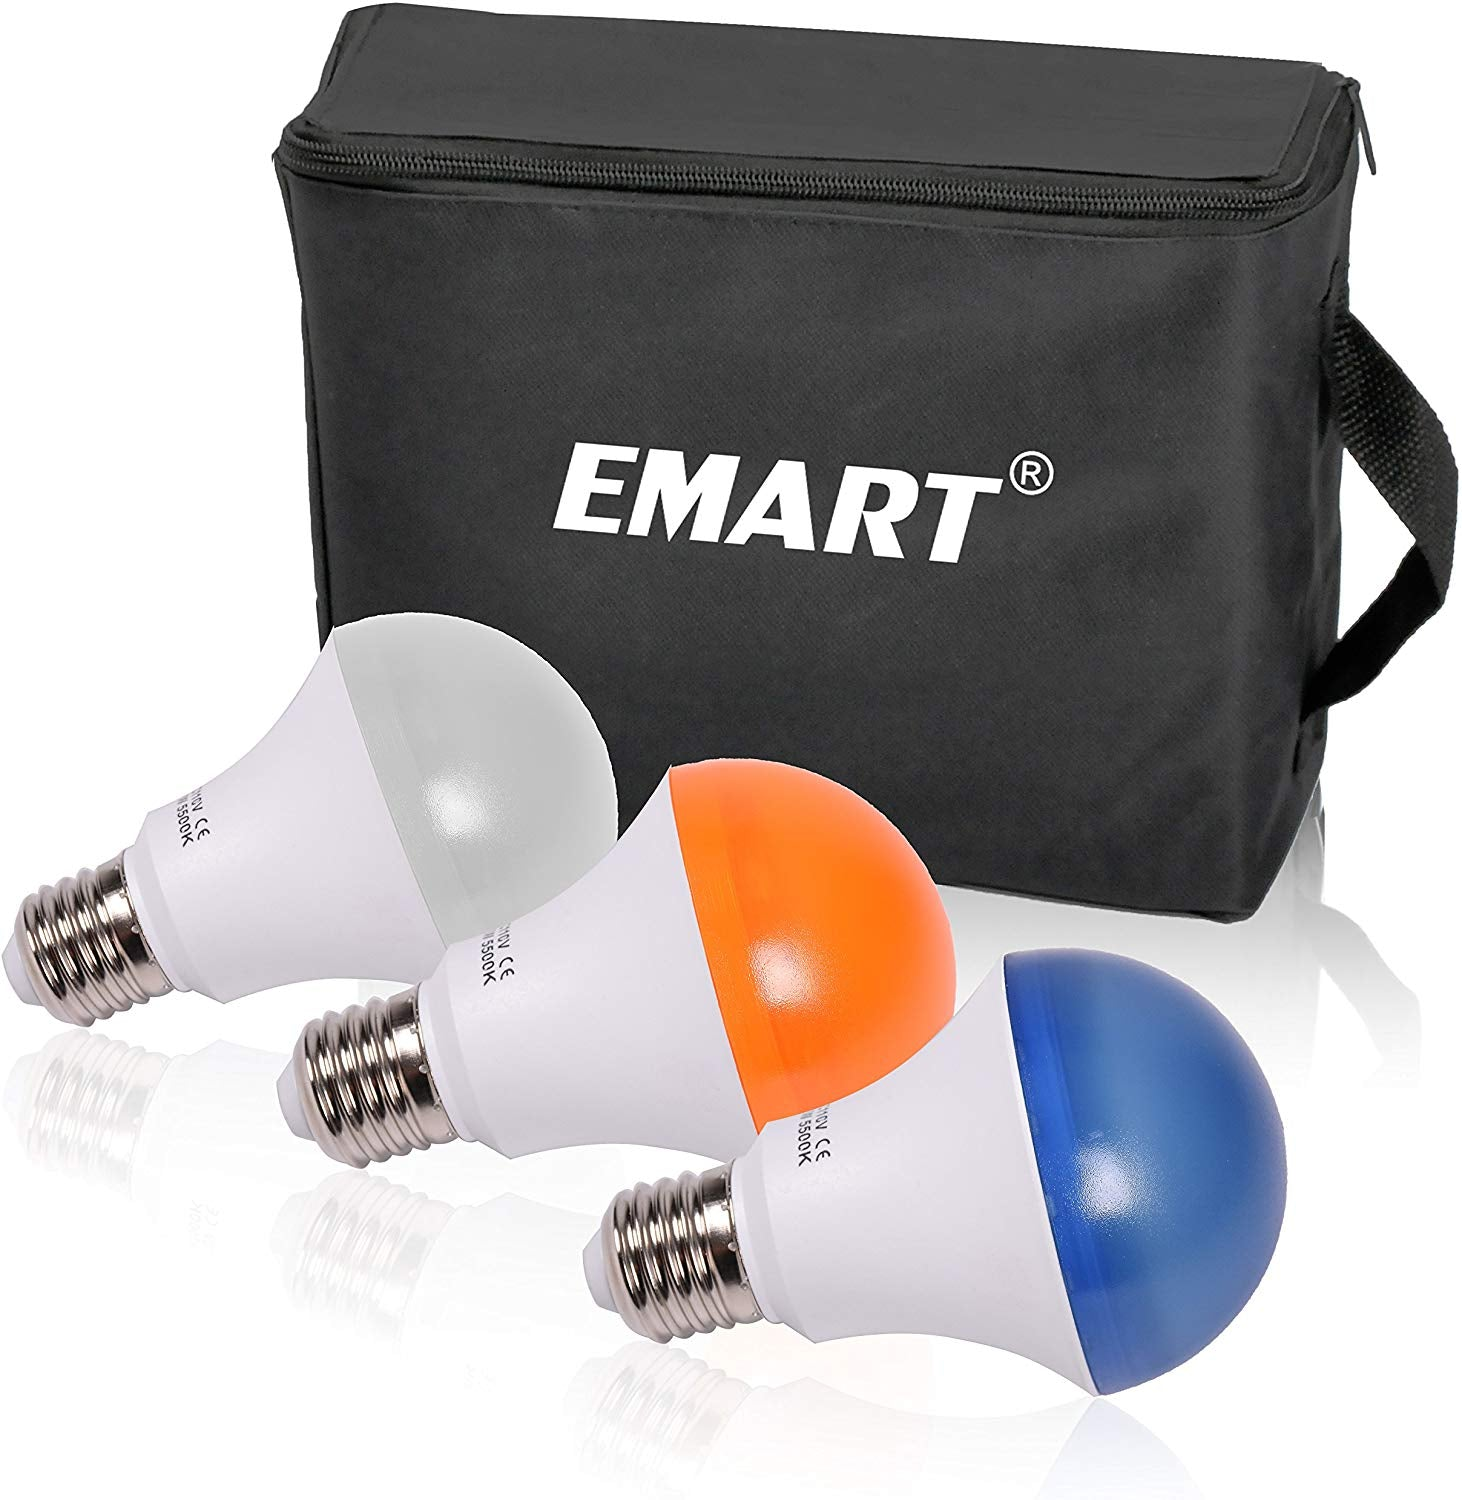 Emart Studio LED Photography Umbrella Lighting Kit, 500W 5500K LED Photo Lights